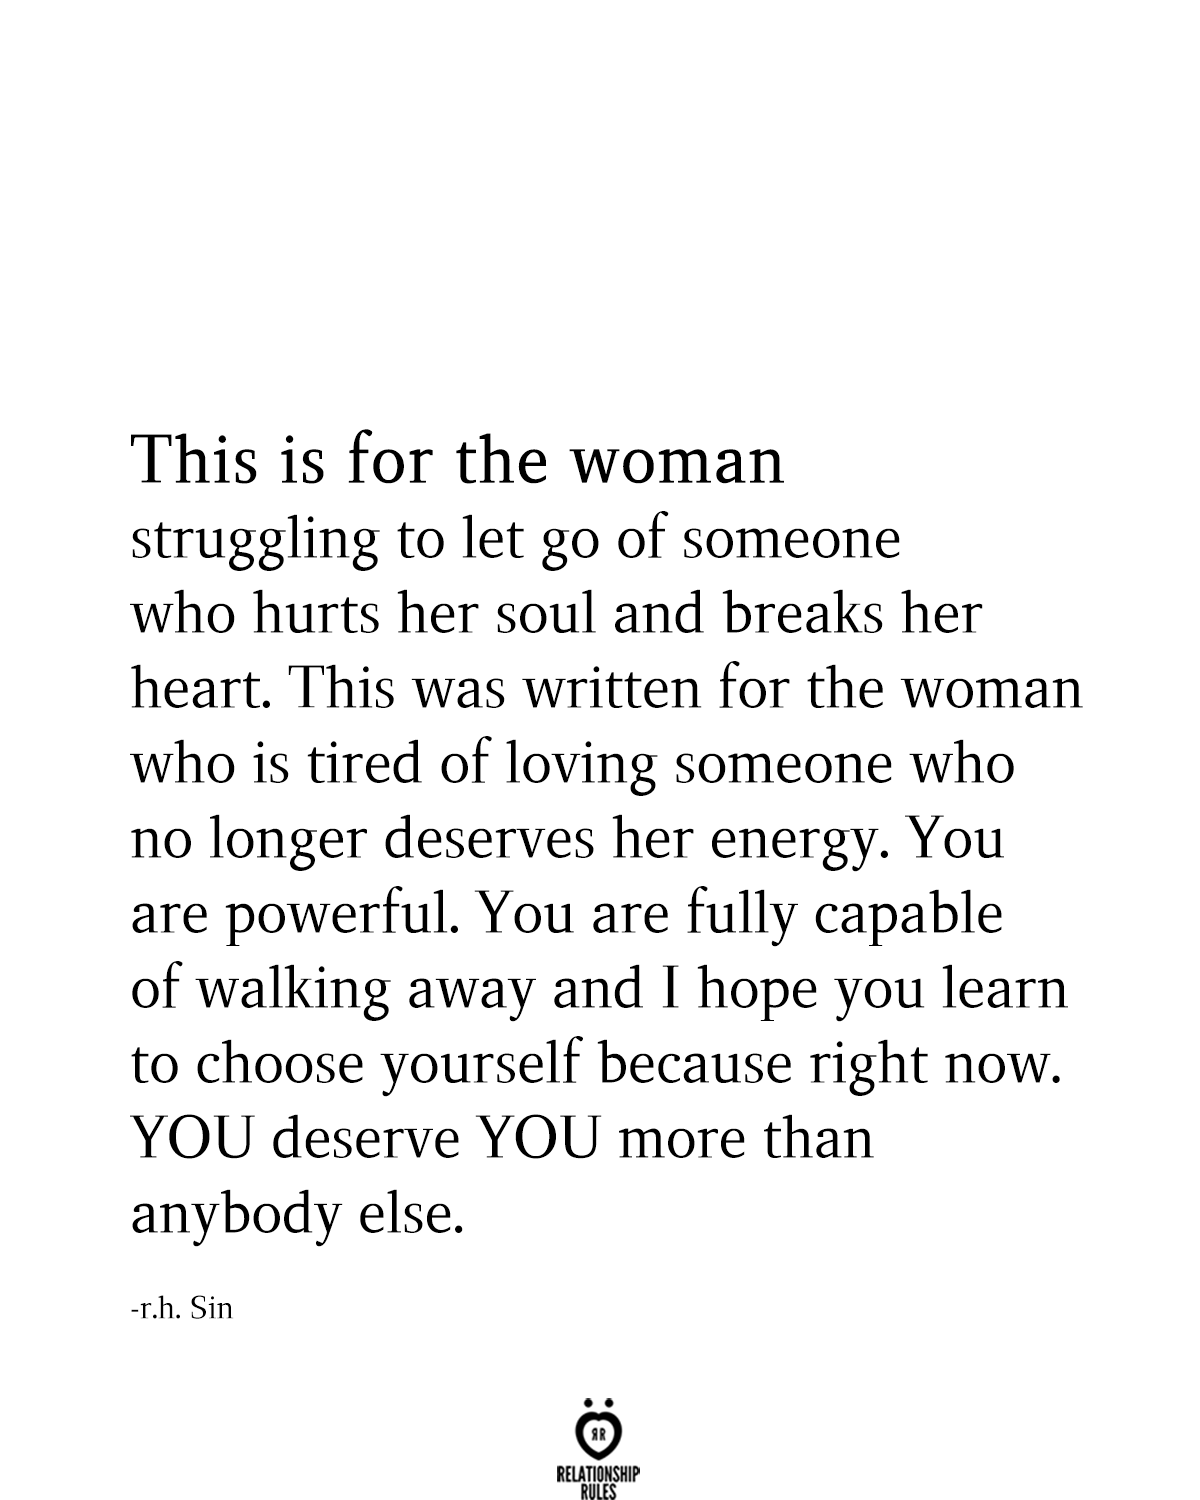 This is for the woman struggling to let go